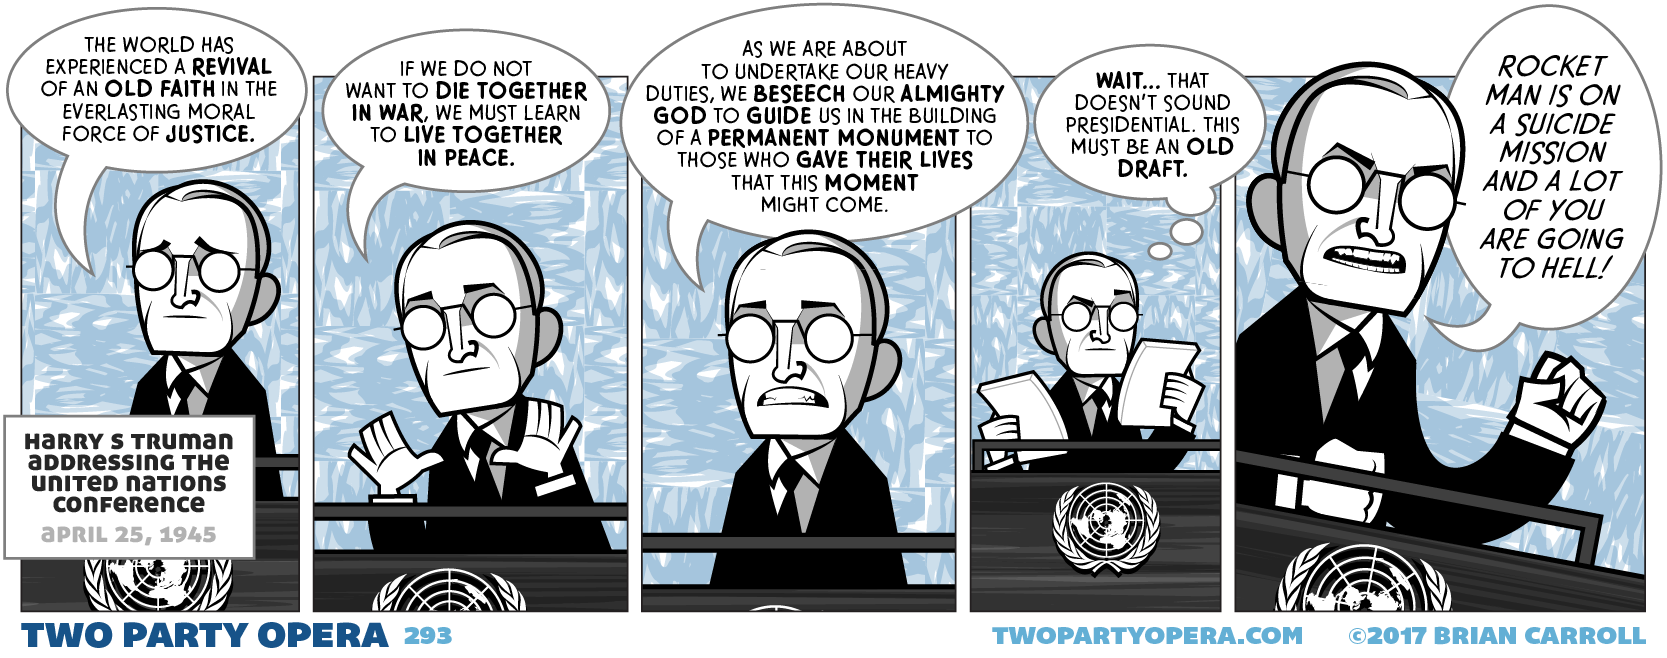 Truman at the United Nations 1945